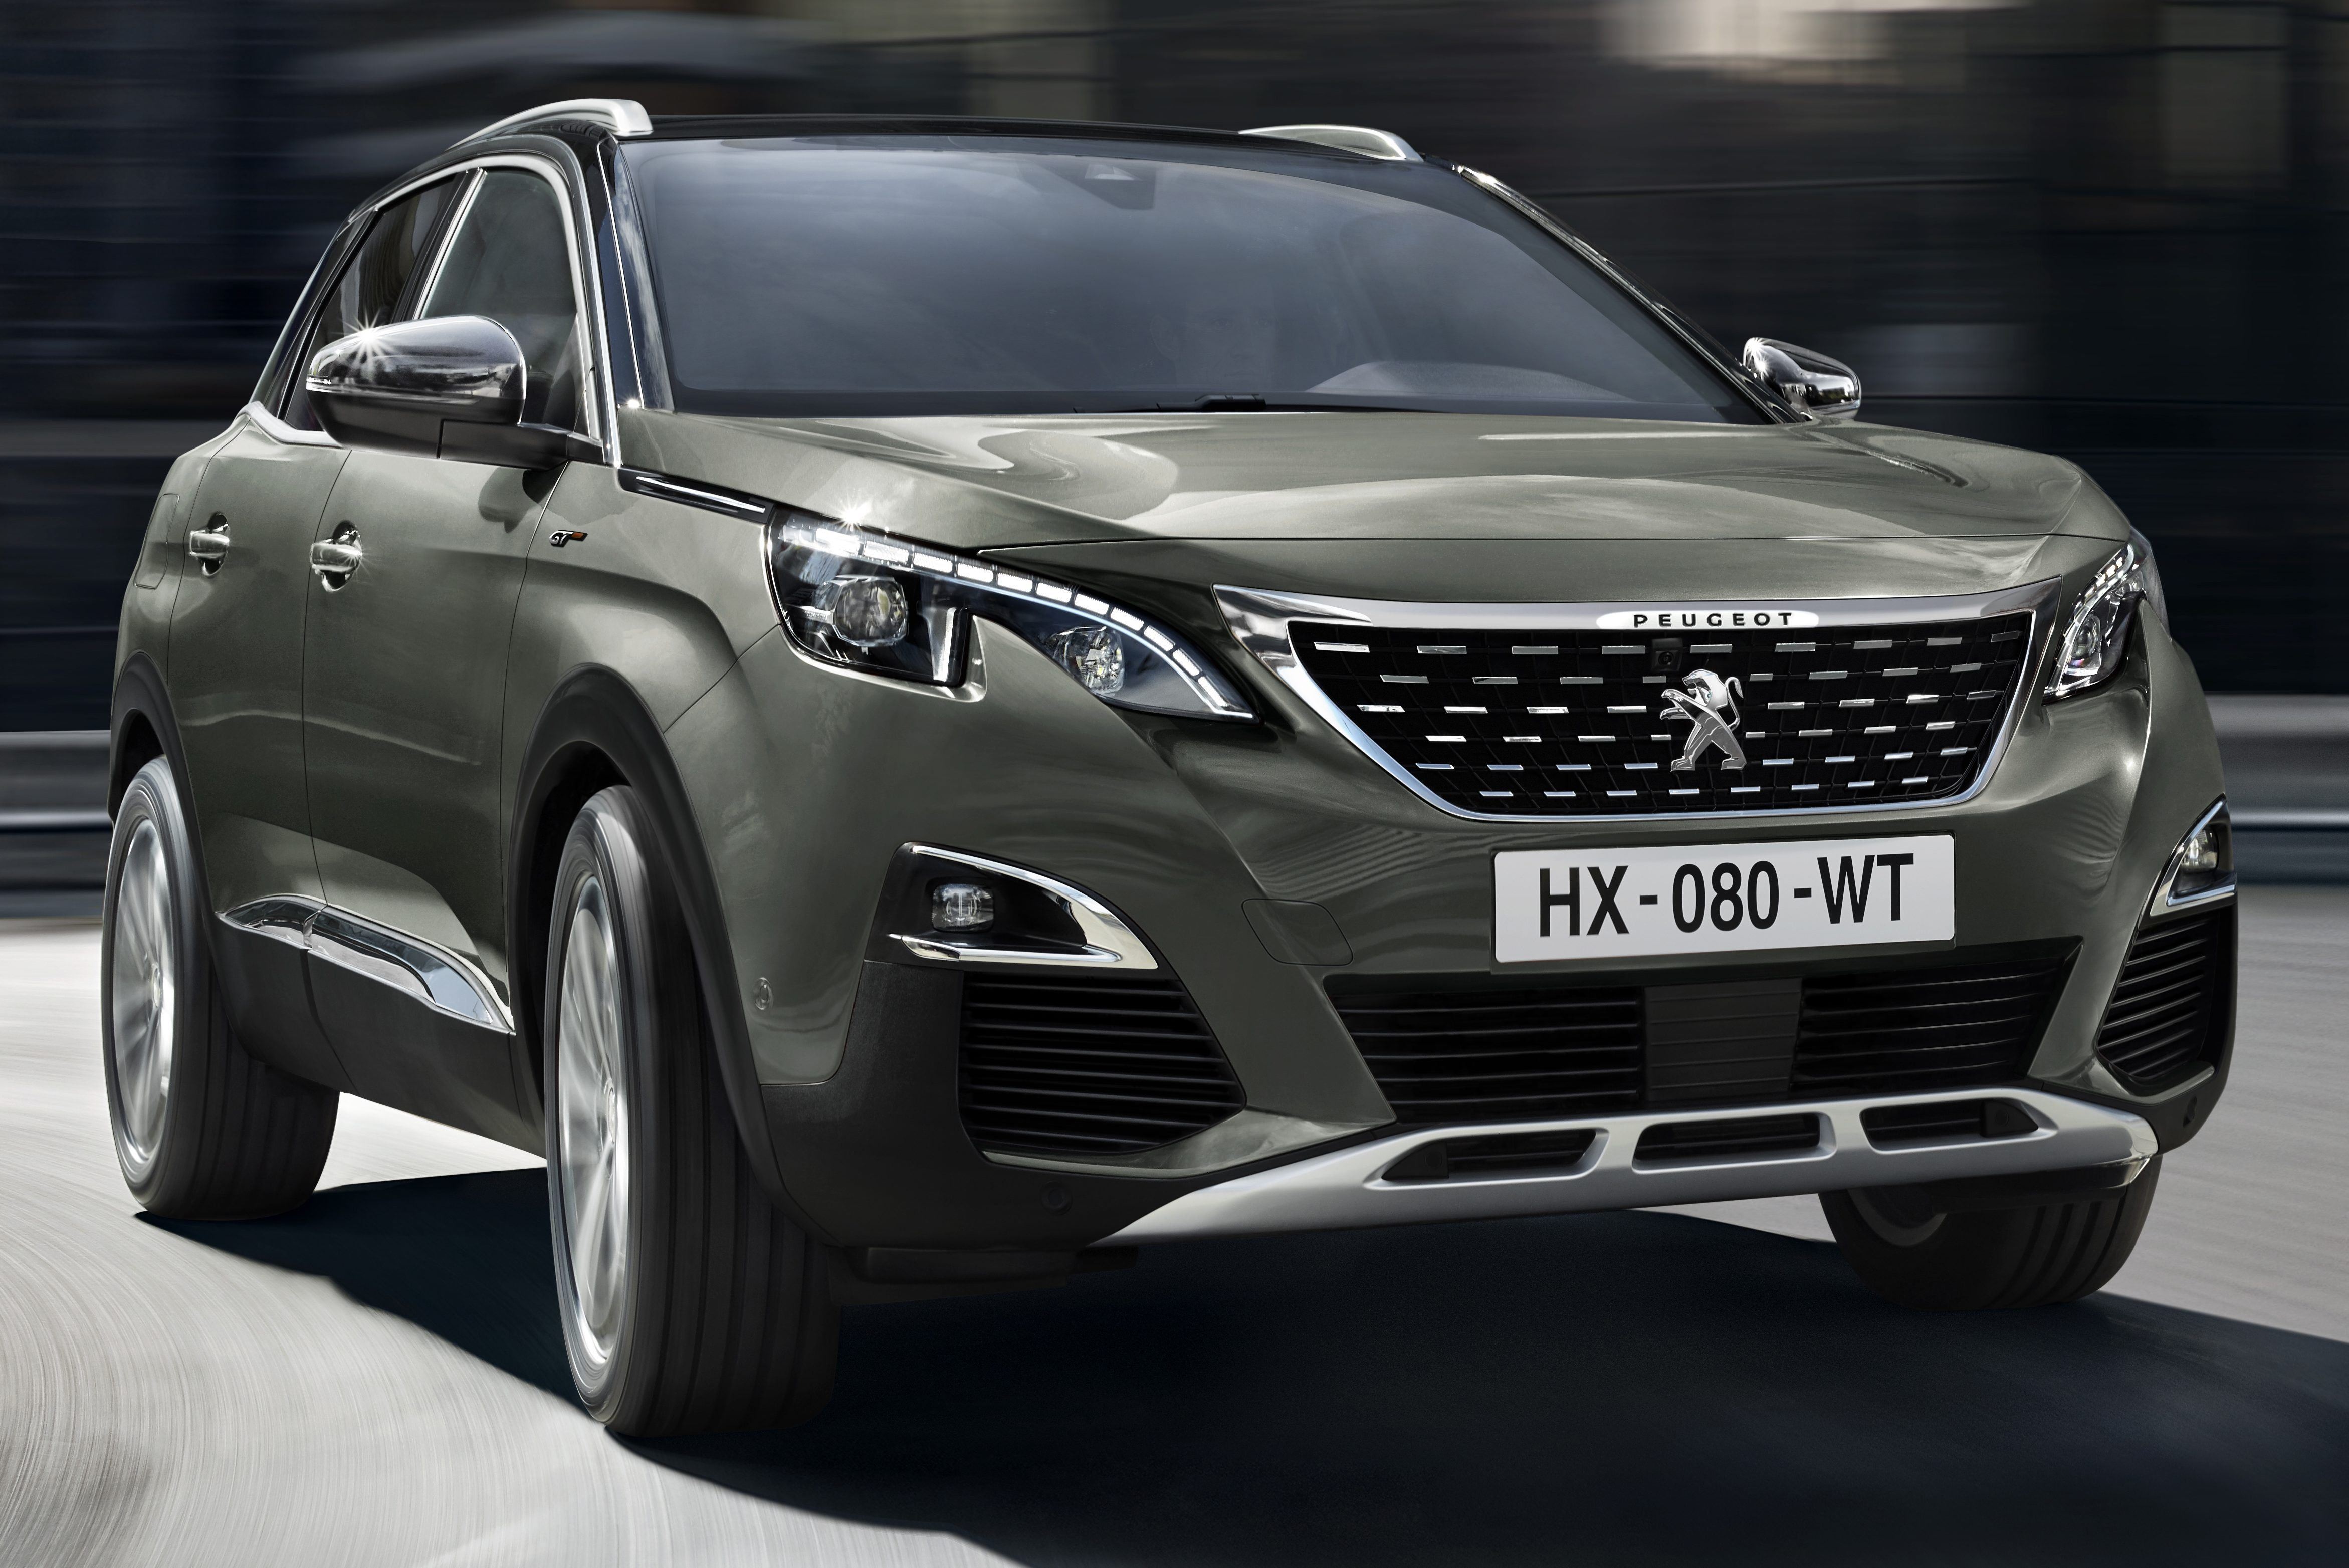 Less than a month after the new peugeot 3008 made its debut in paris the